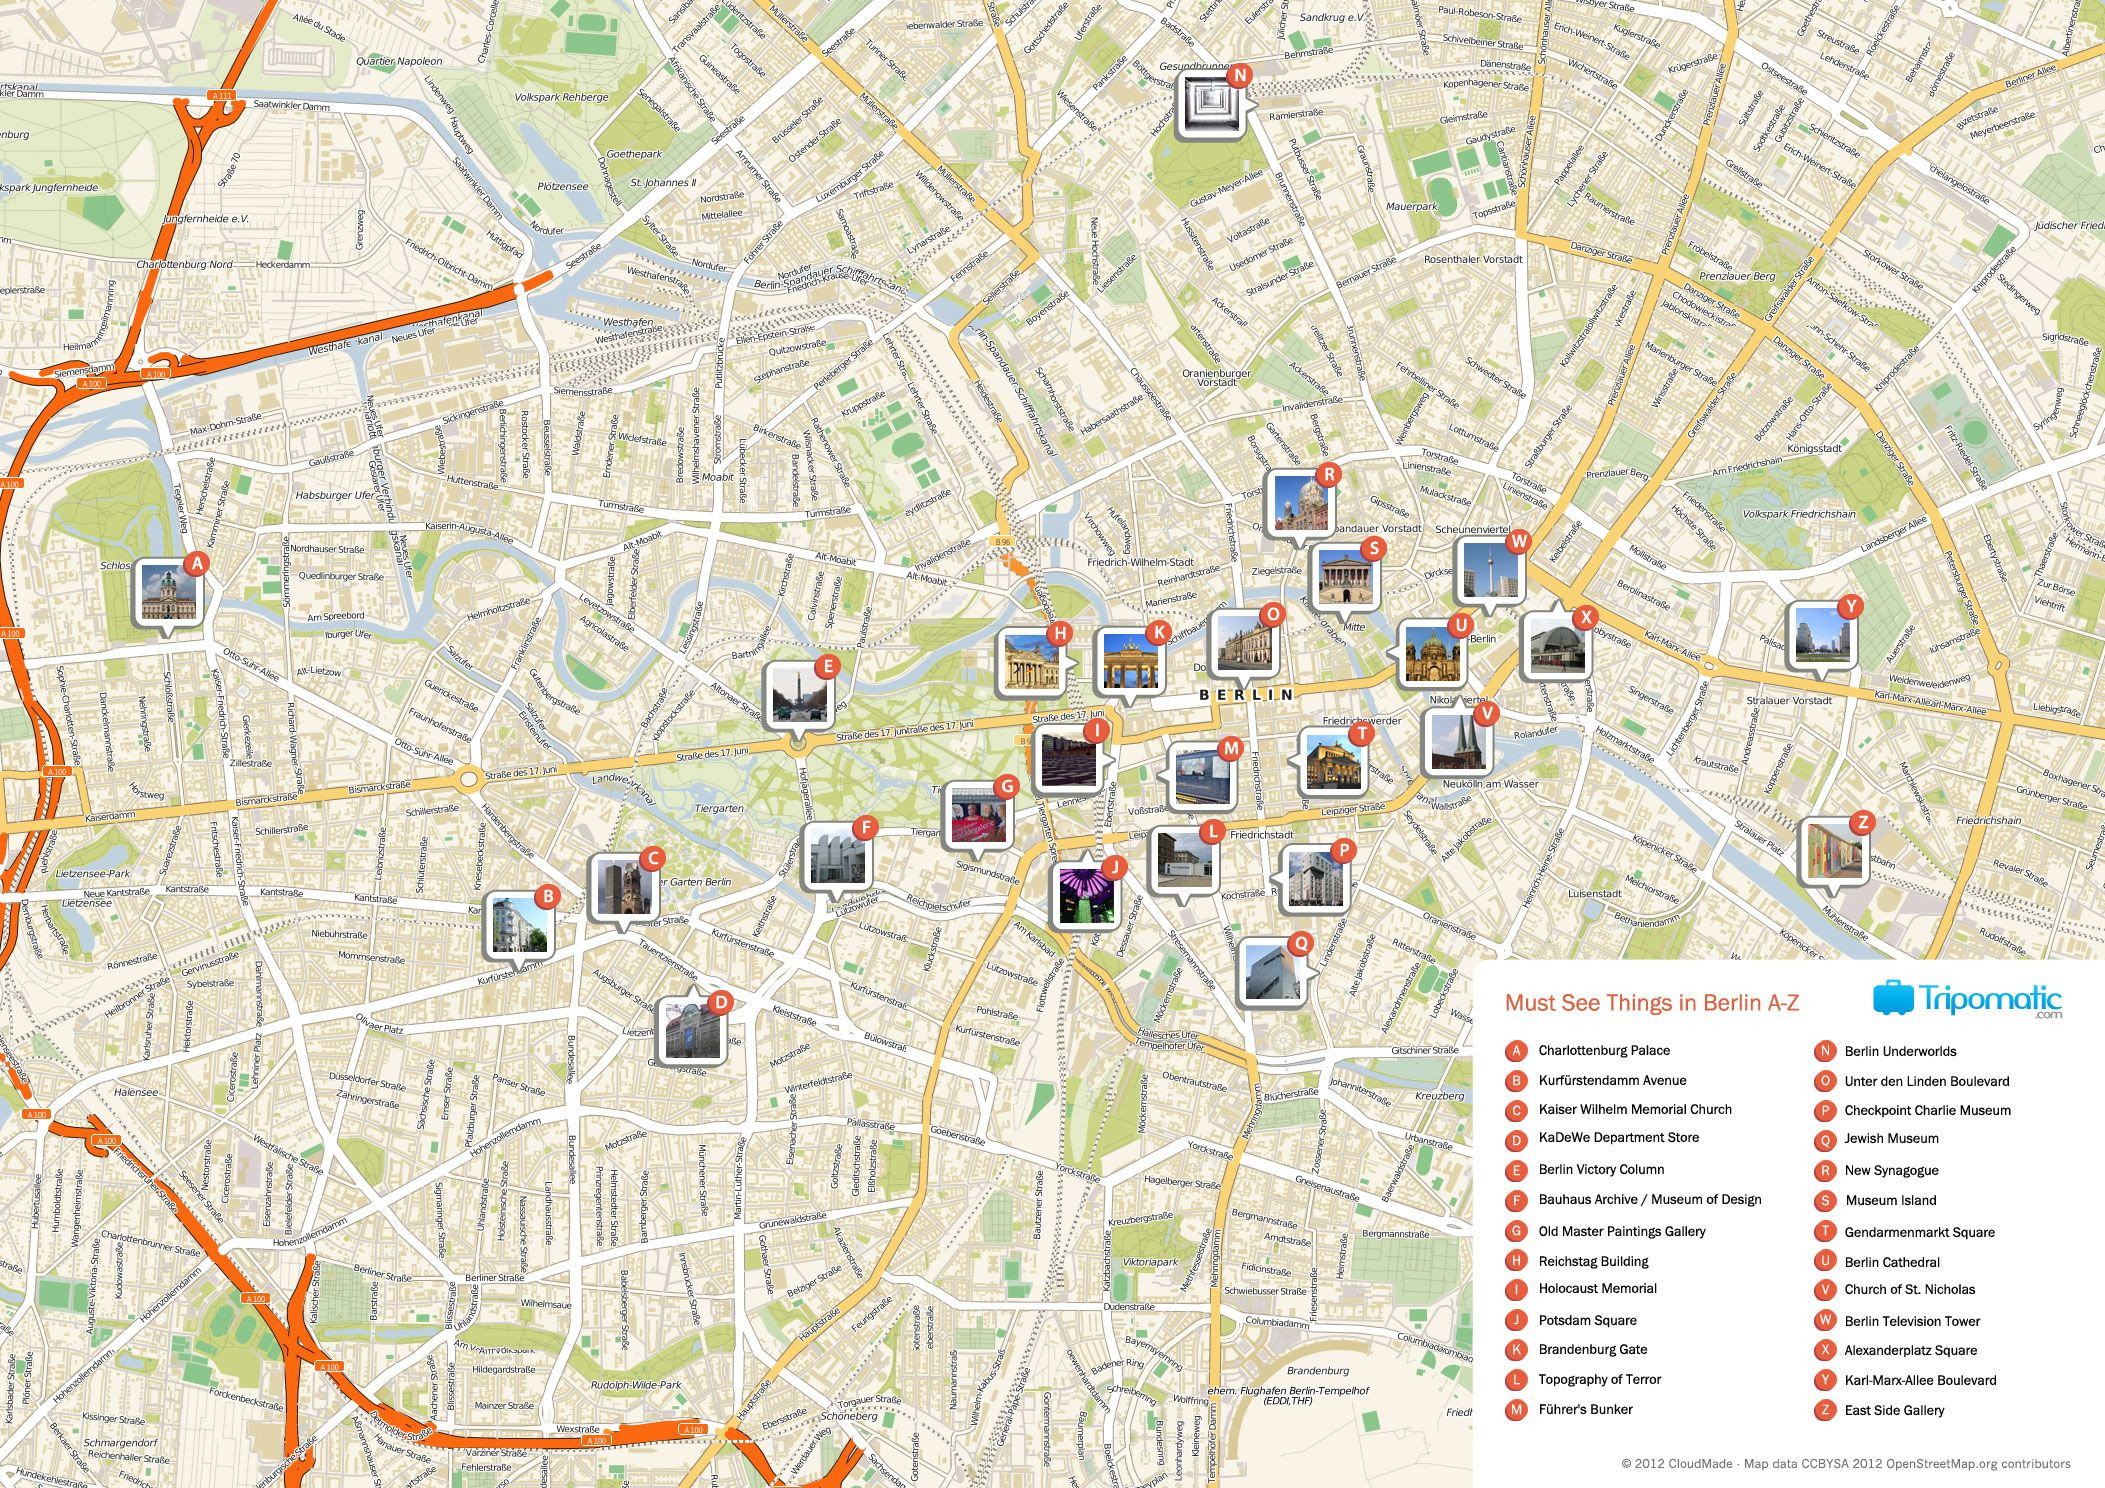 Printable Map Rome City Centre Awesome Map Of Berlin Tourist Sights And Attractions From Tripomatic